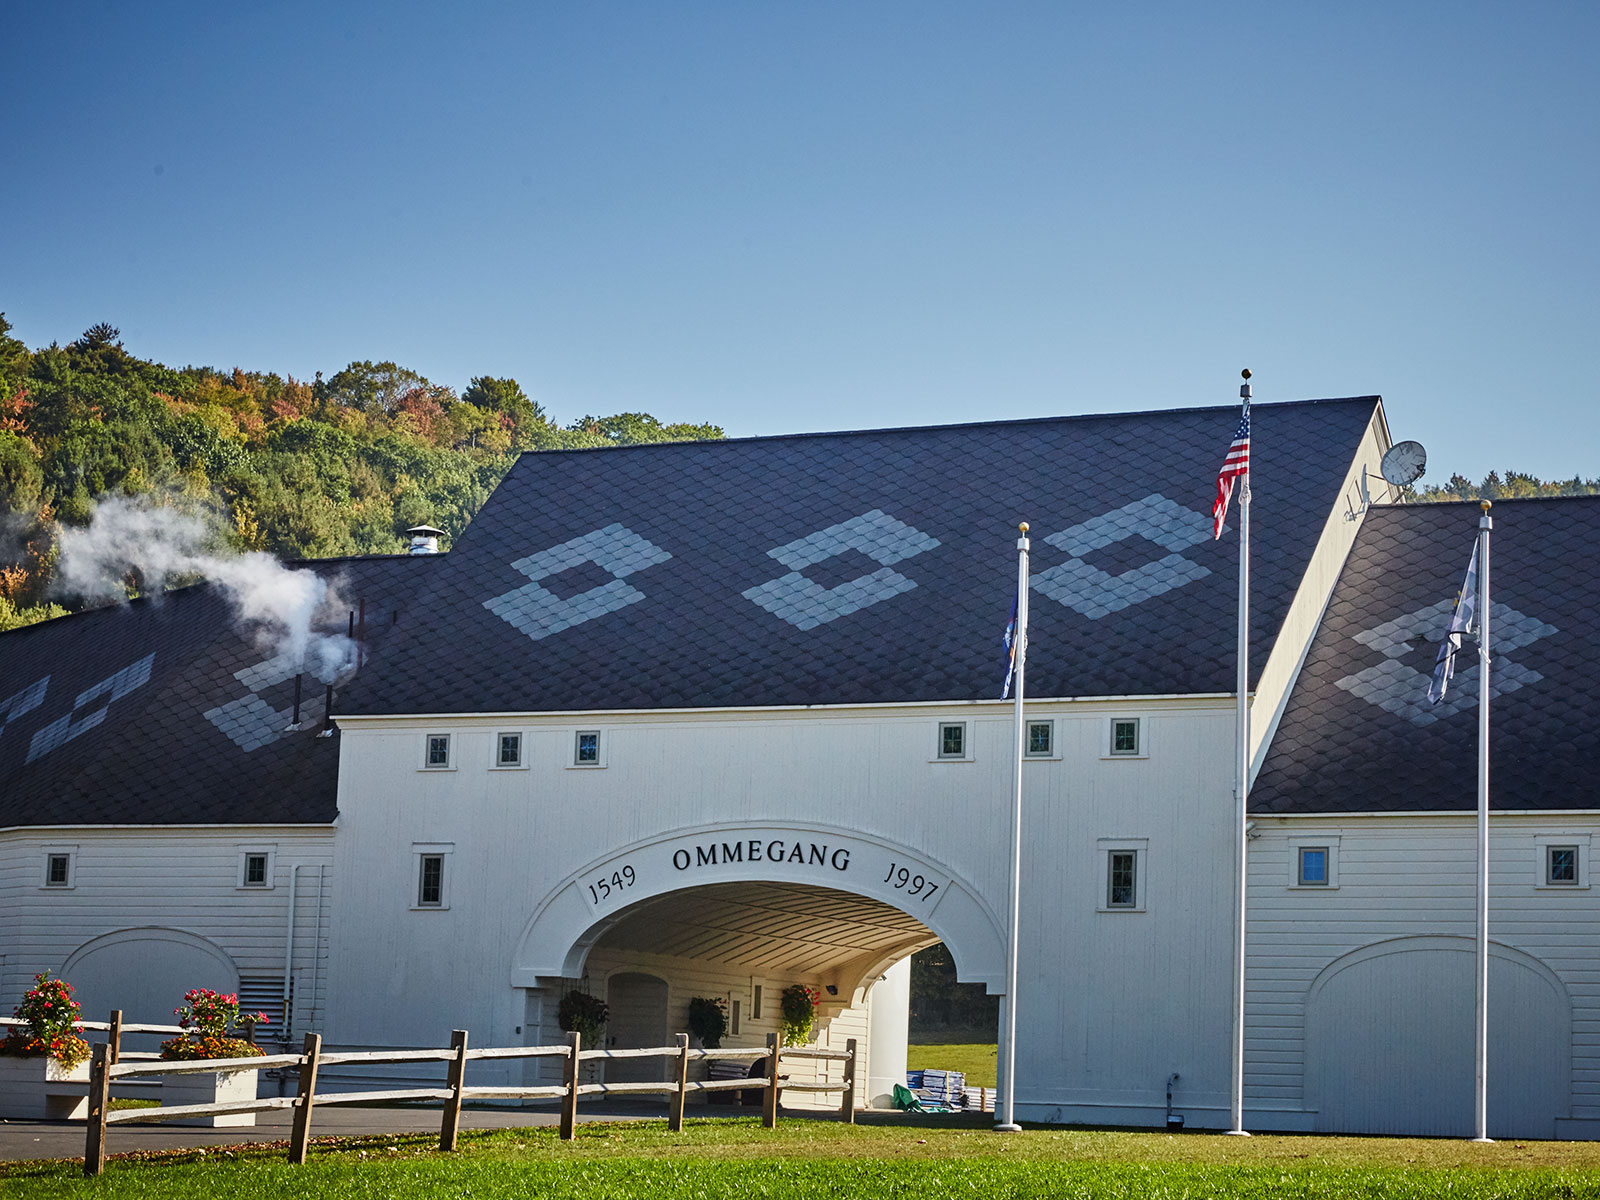 This Startup Lets You Crash in a Tent at Brewery Ommegang